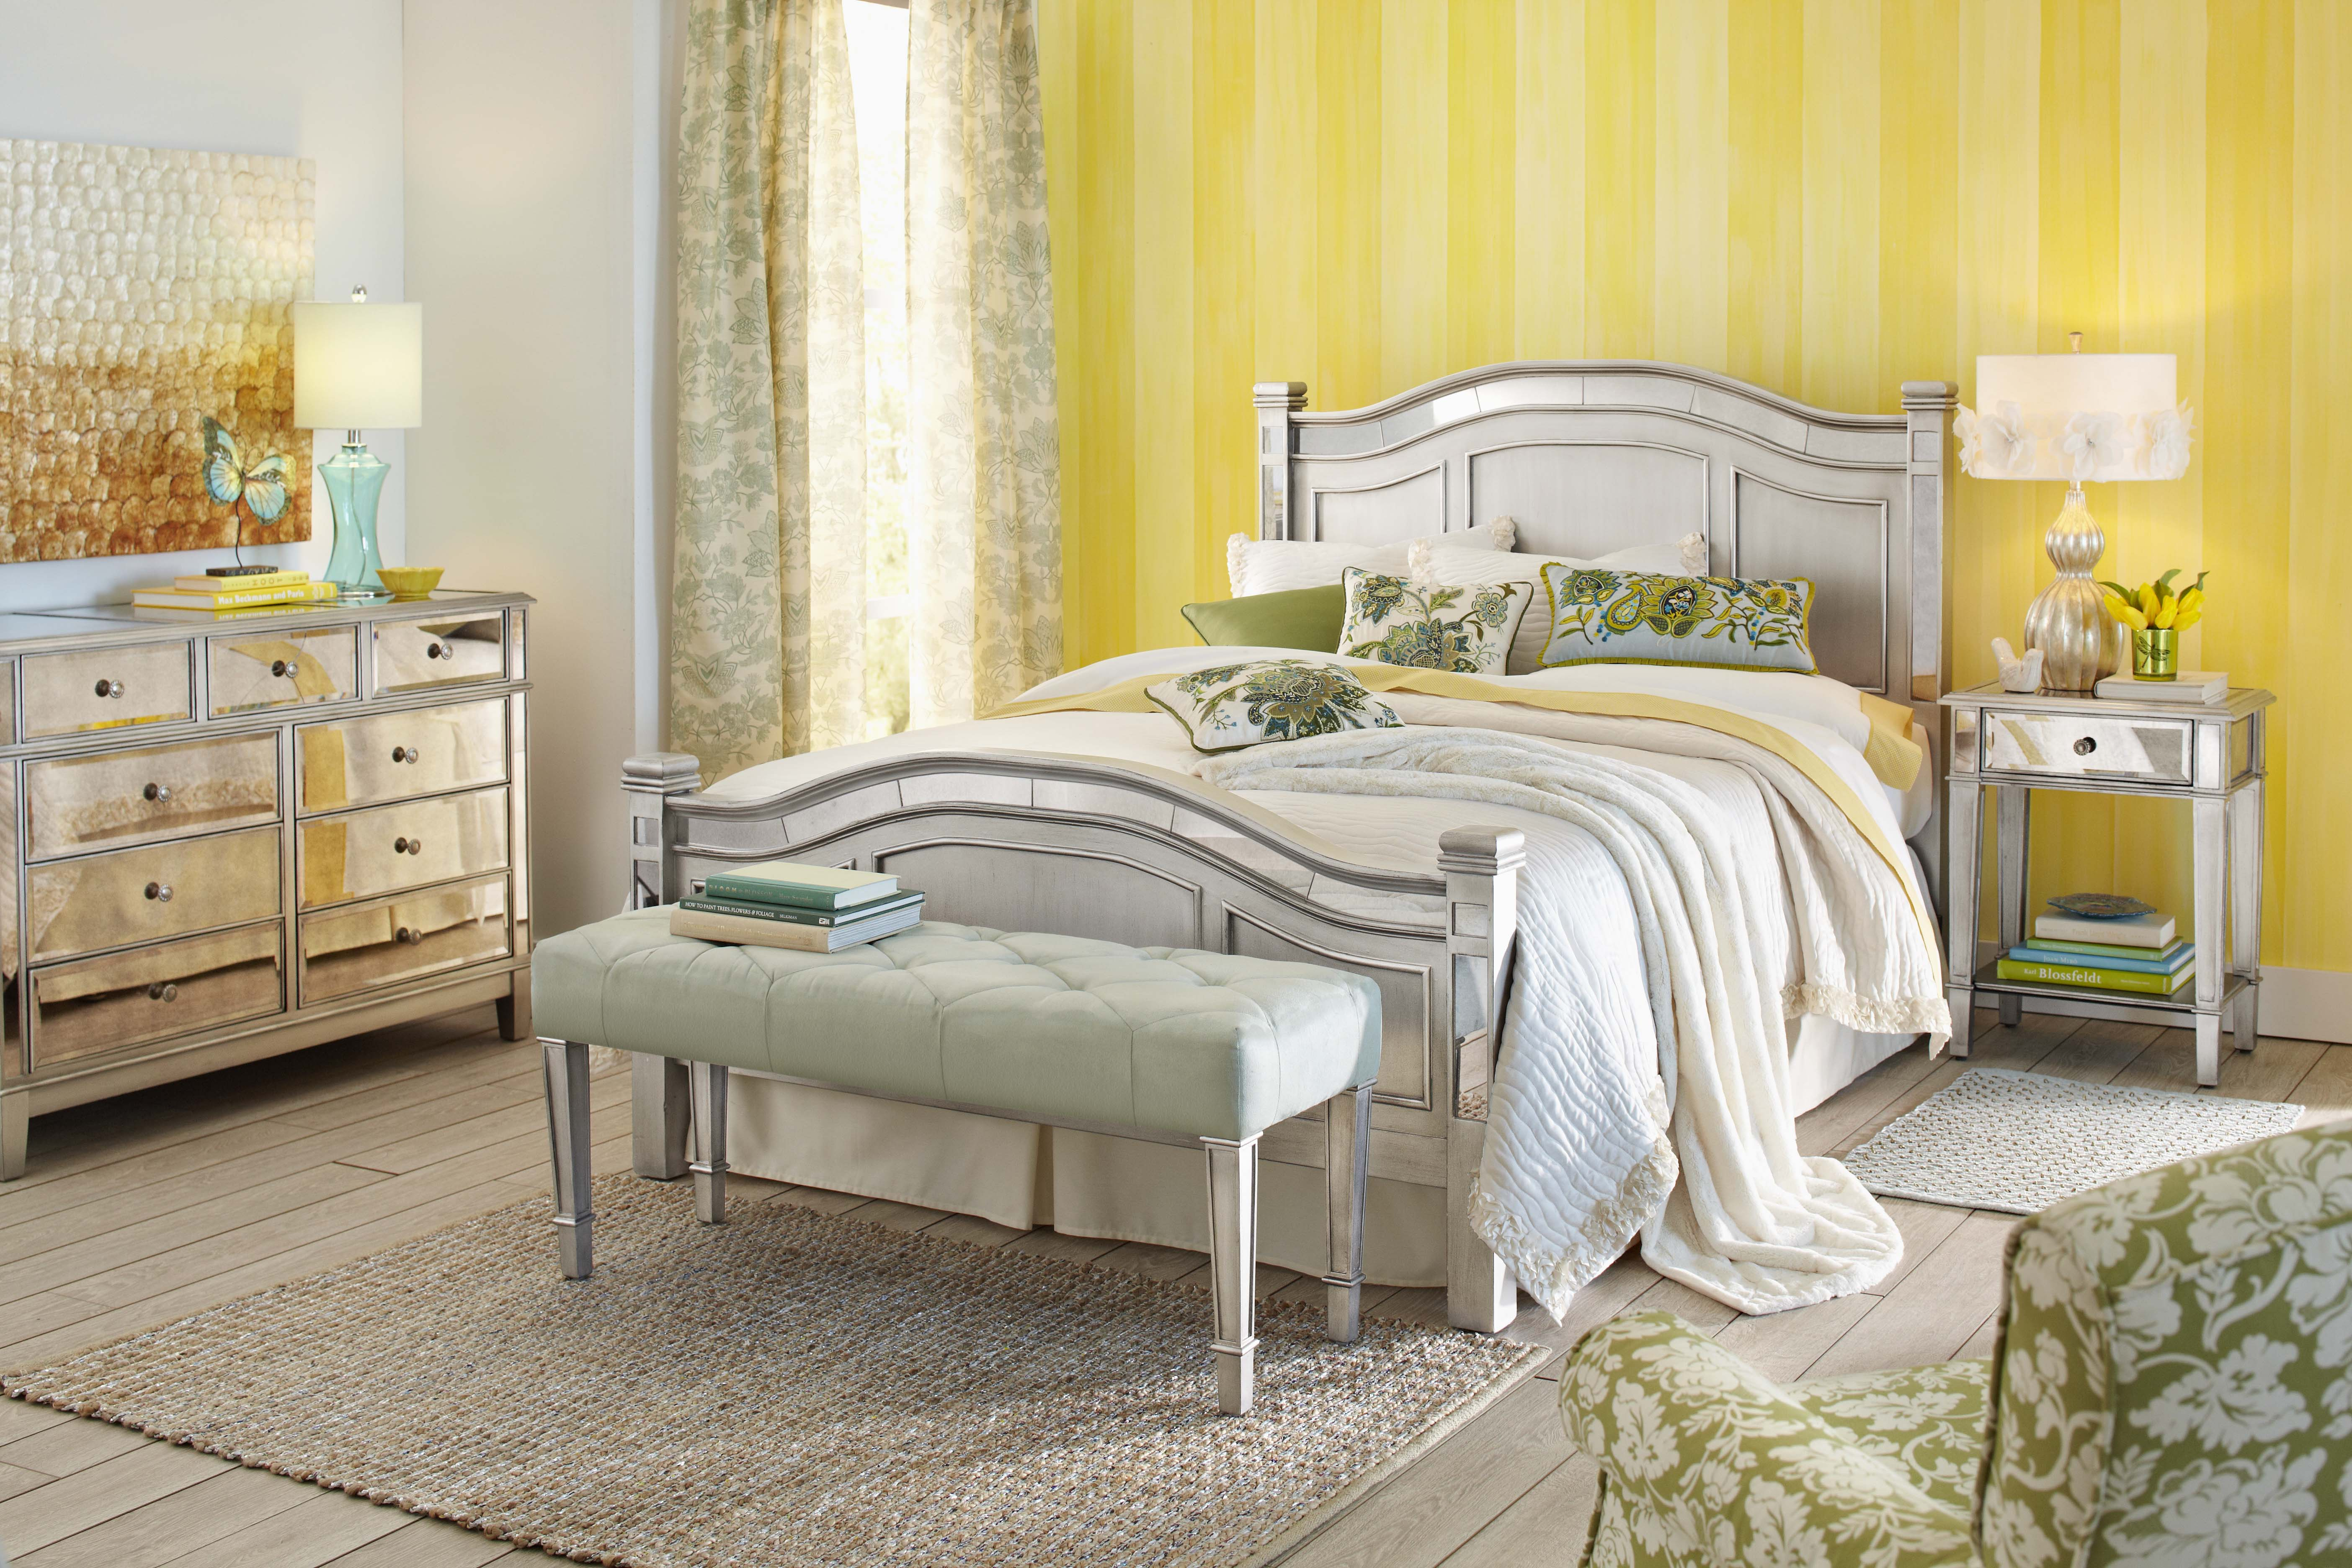 Pier 1 Mirrored Bedroom Furniture Hawk Haven